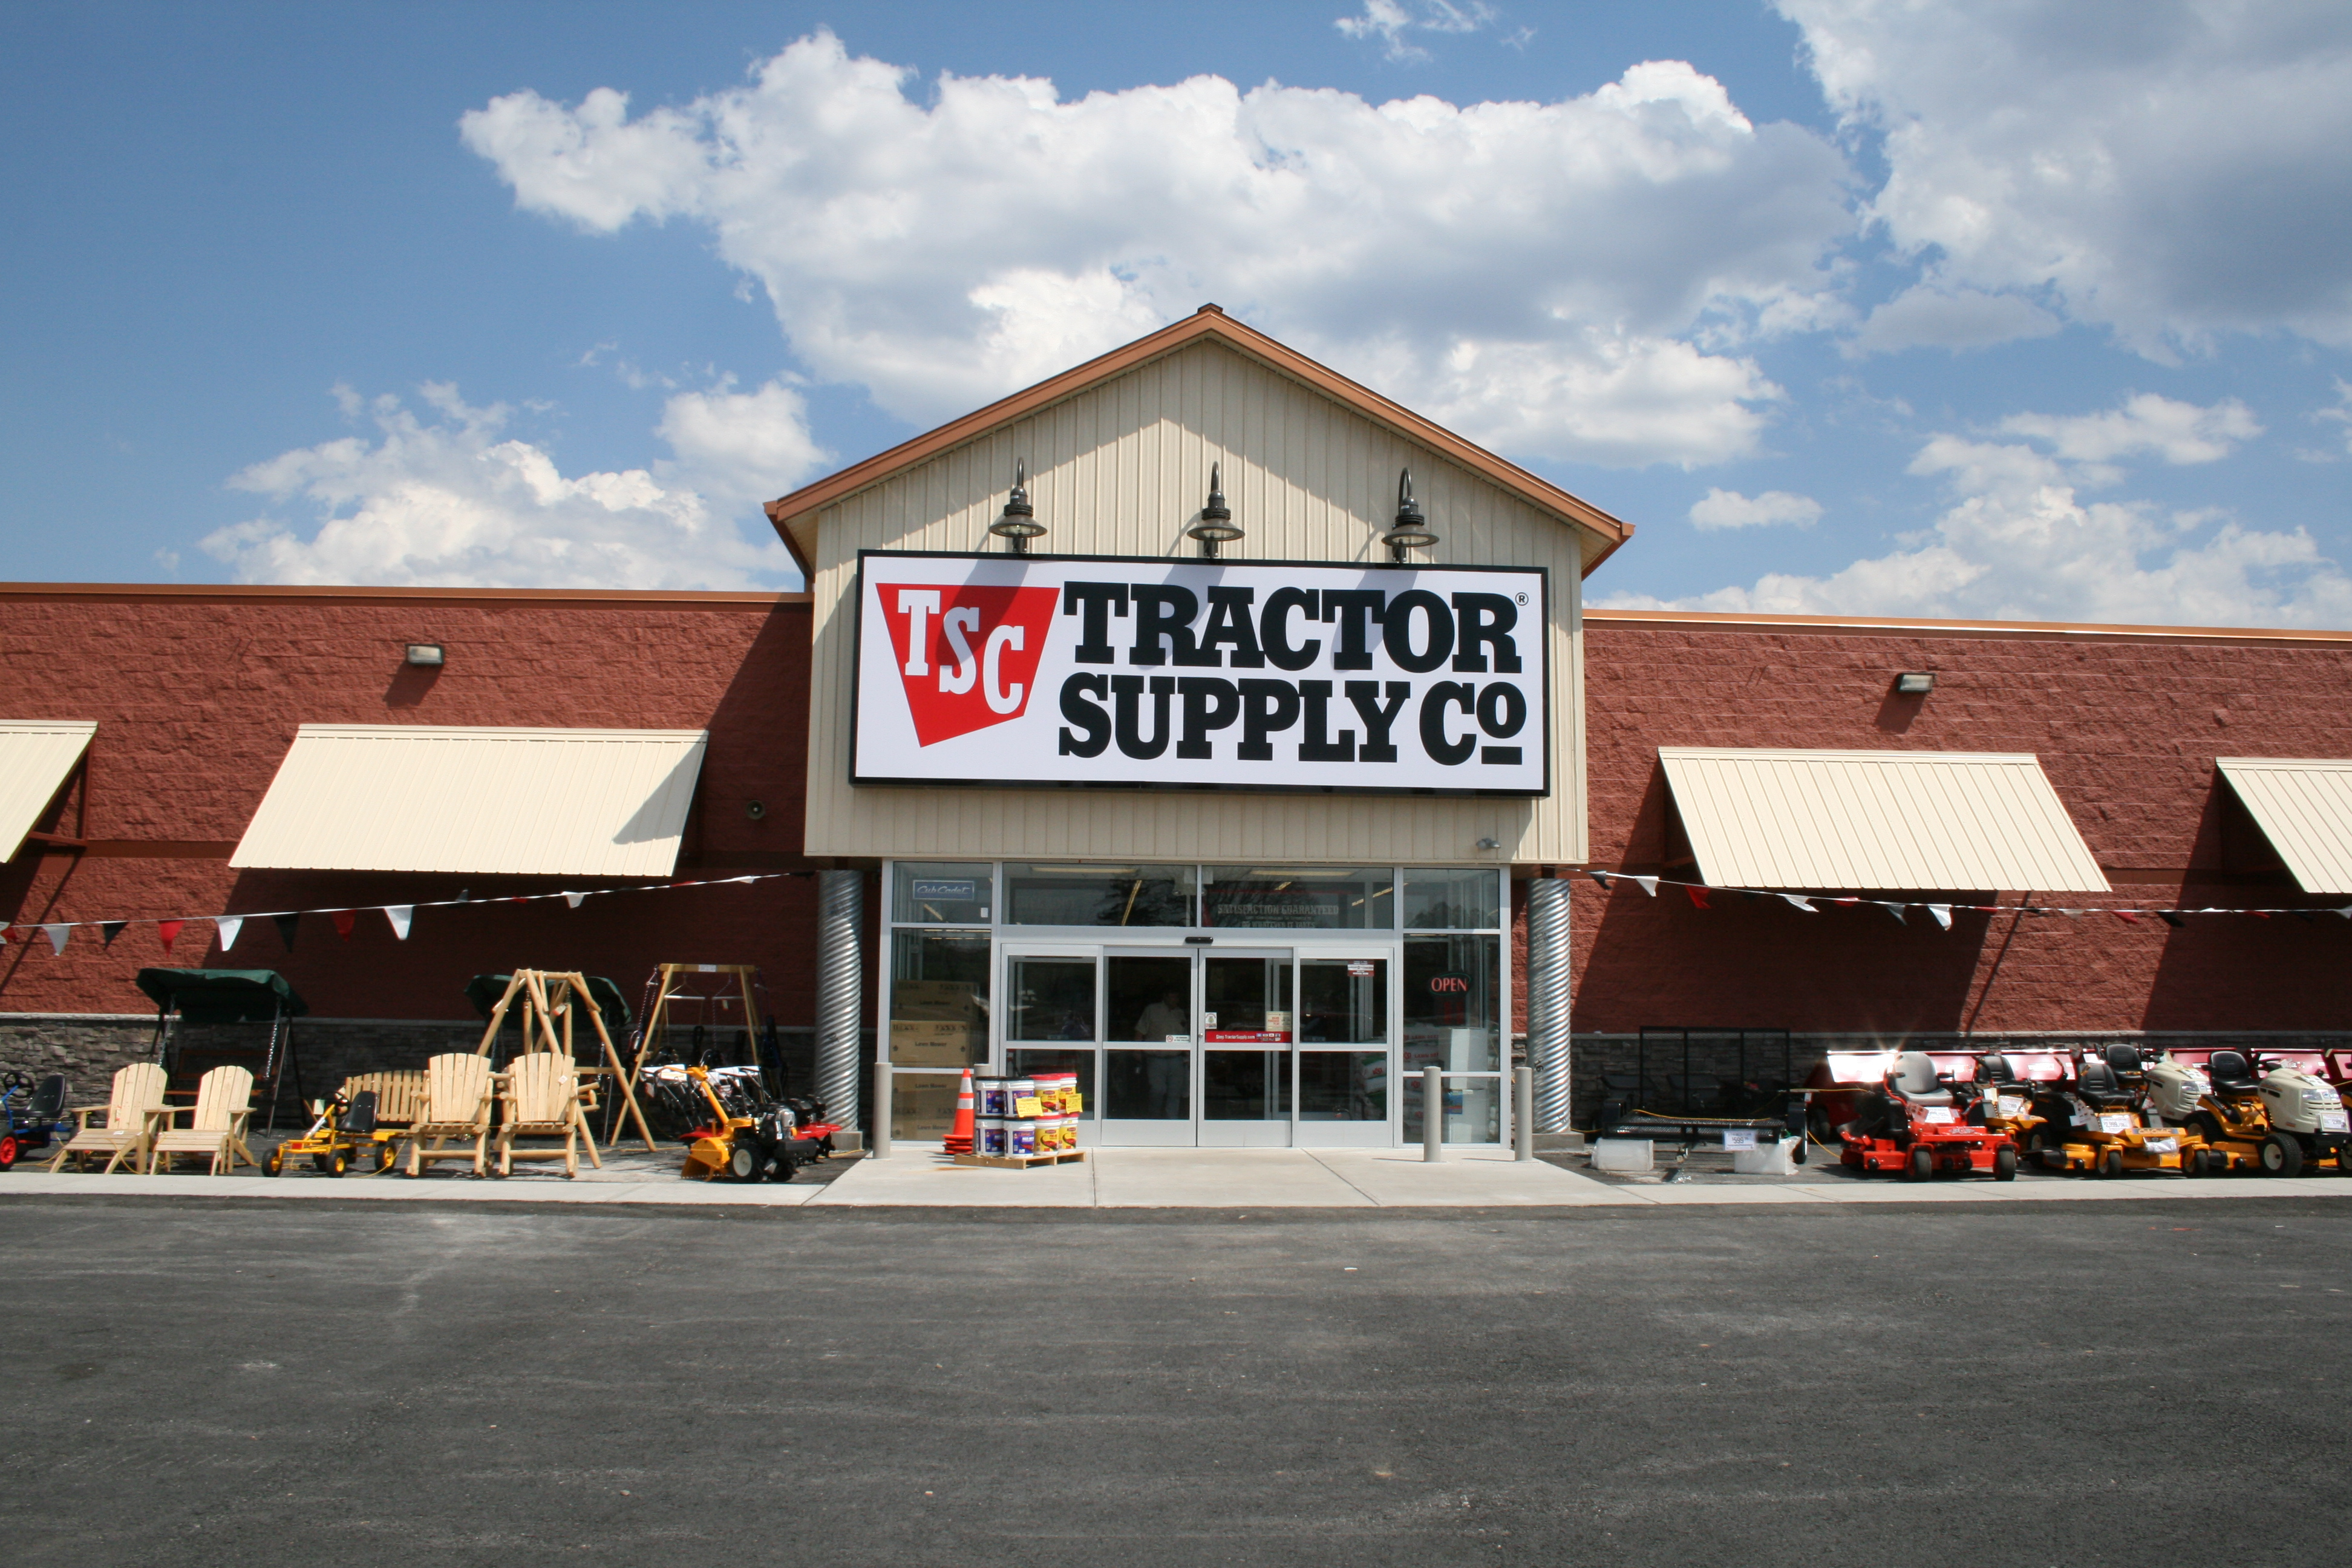 Tractor Supply Company is a chain of retail stores that sells farm and ranch goods. They are located in 49 out of 50 US states. Tractor Supply has consistent hour across their network of stores. They are open from 8 am until 9 pm Monday through Saturday and on Sunday they are open from 9 am until 7 pm.